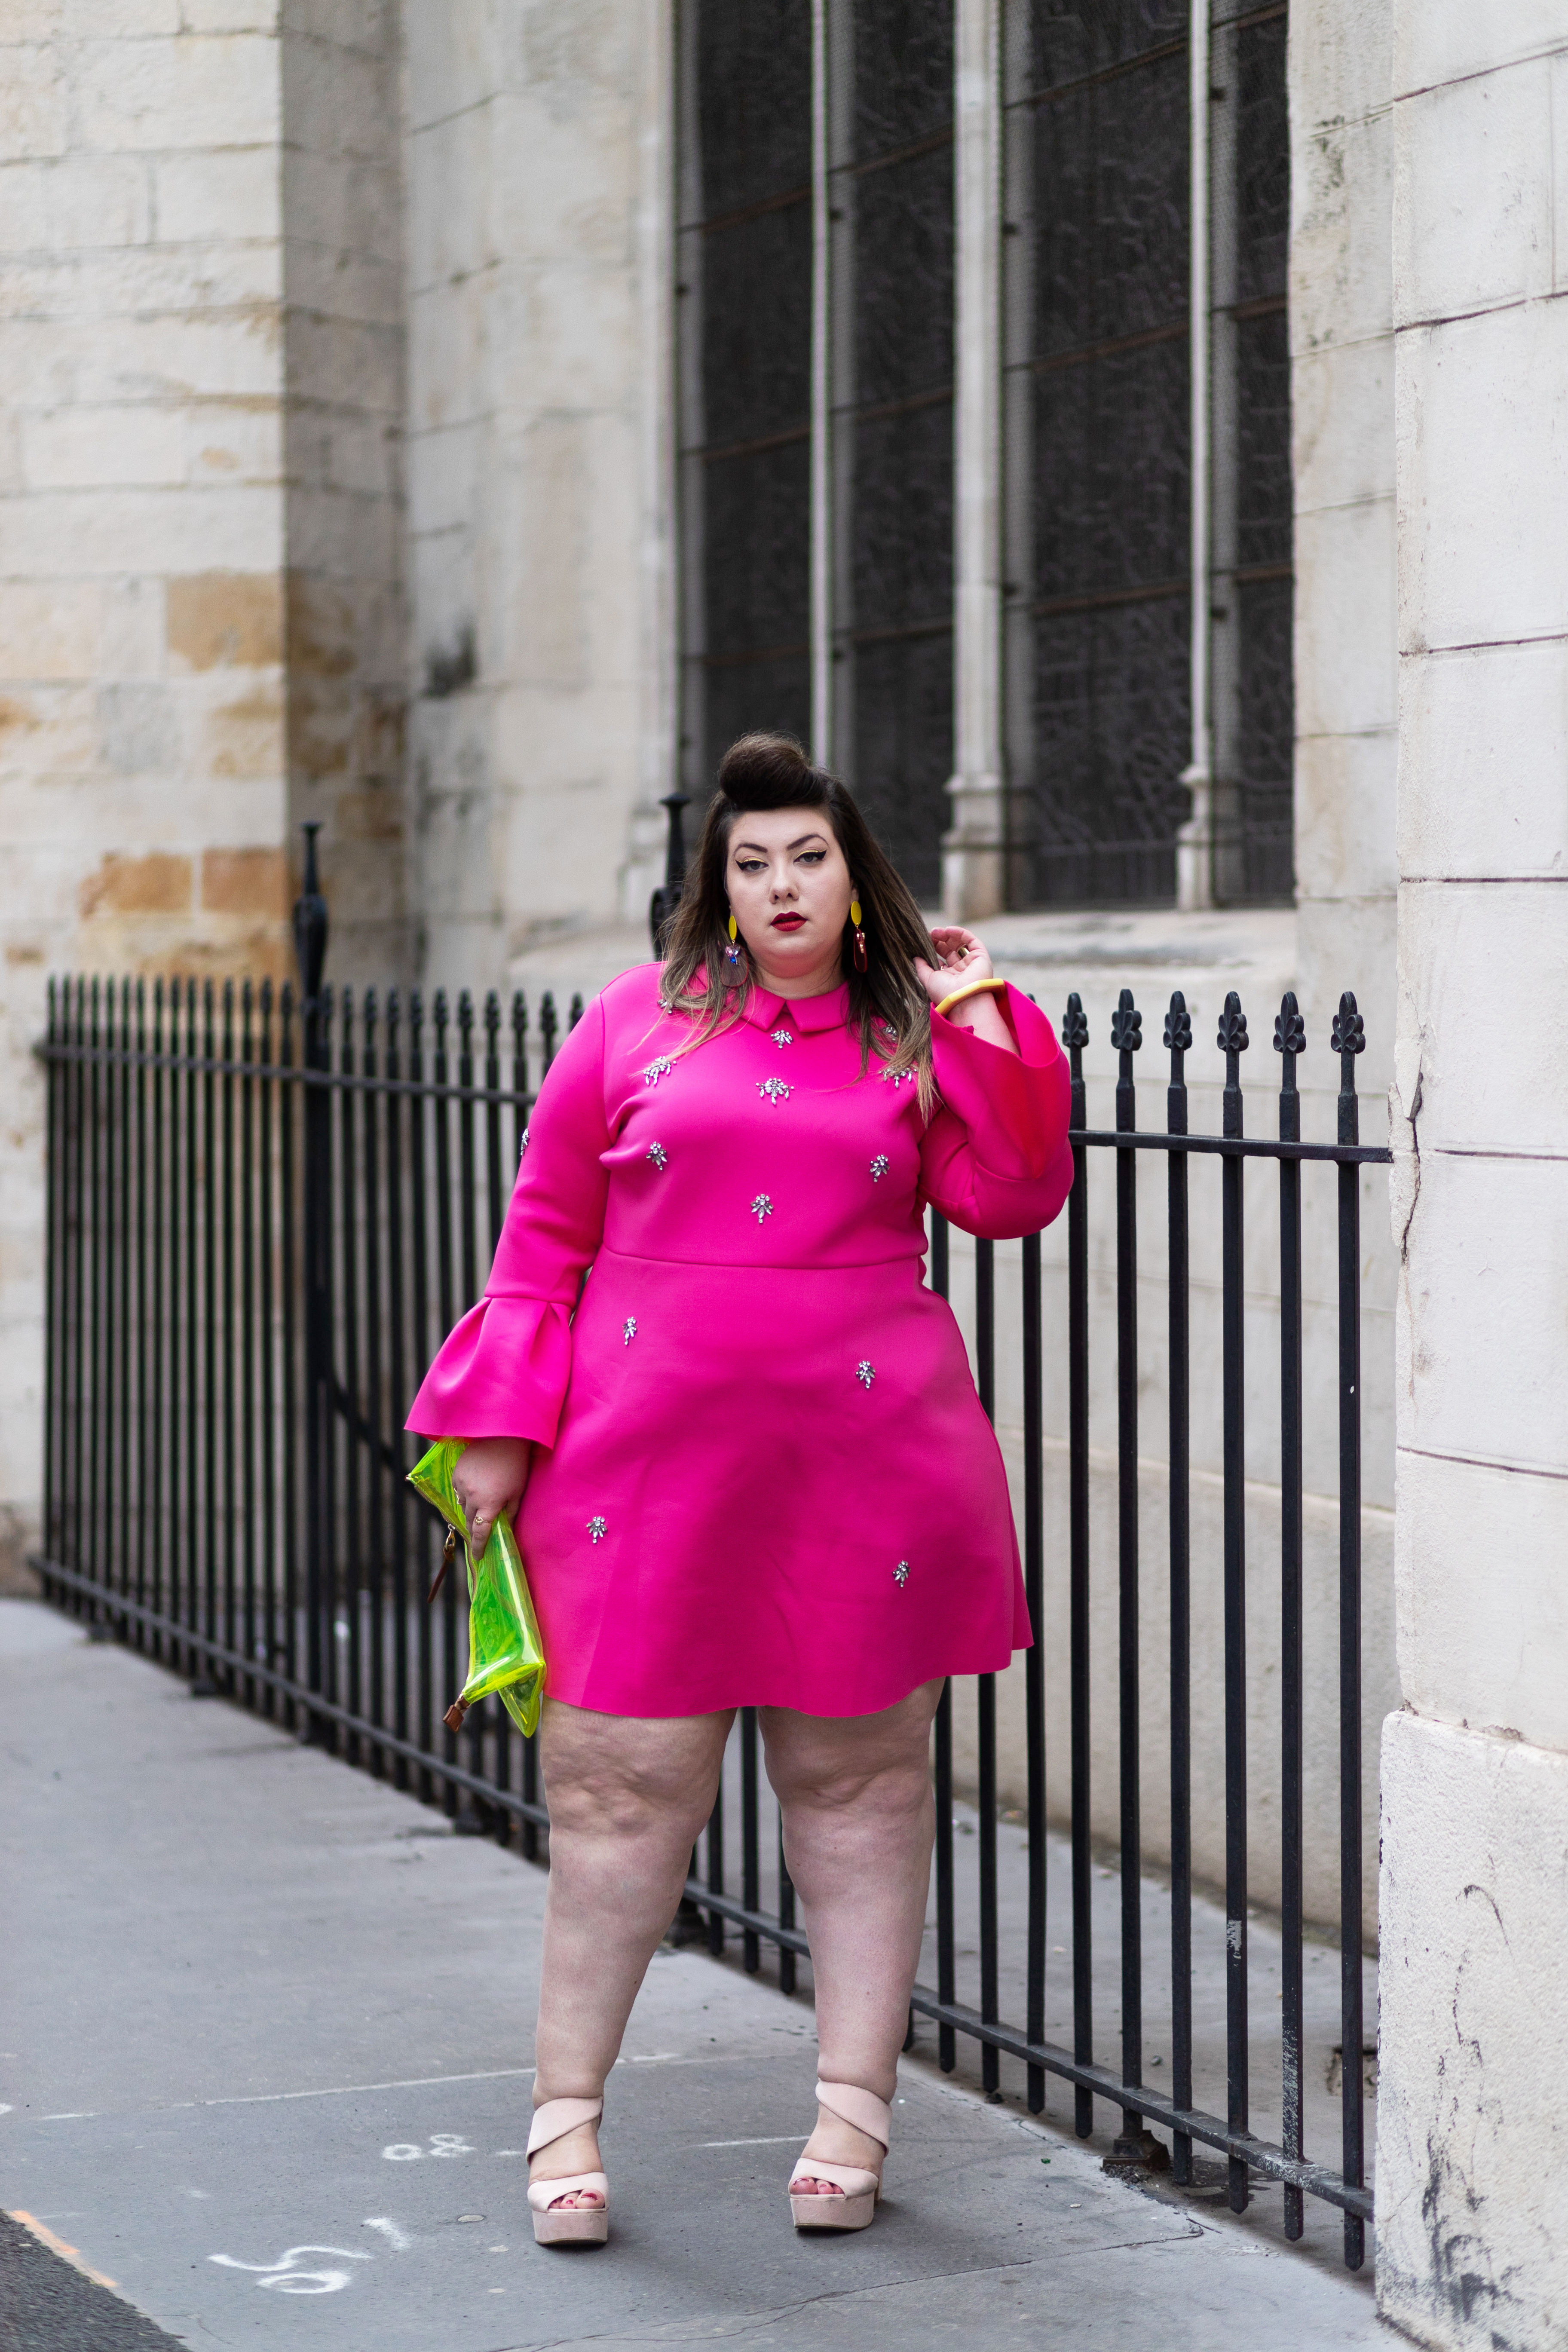 asos curve neoprene dress plus size blogger curvy girl ronde body positive mode grande taille